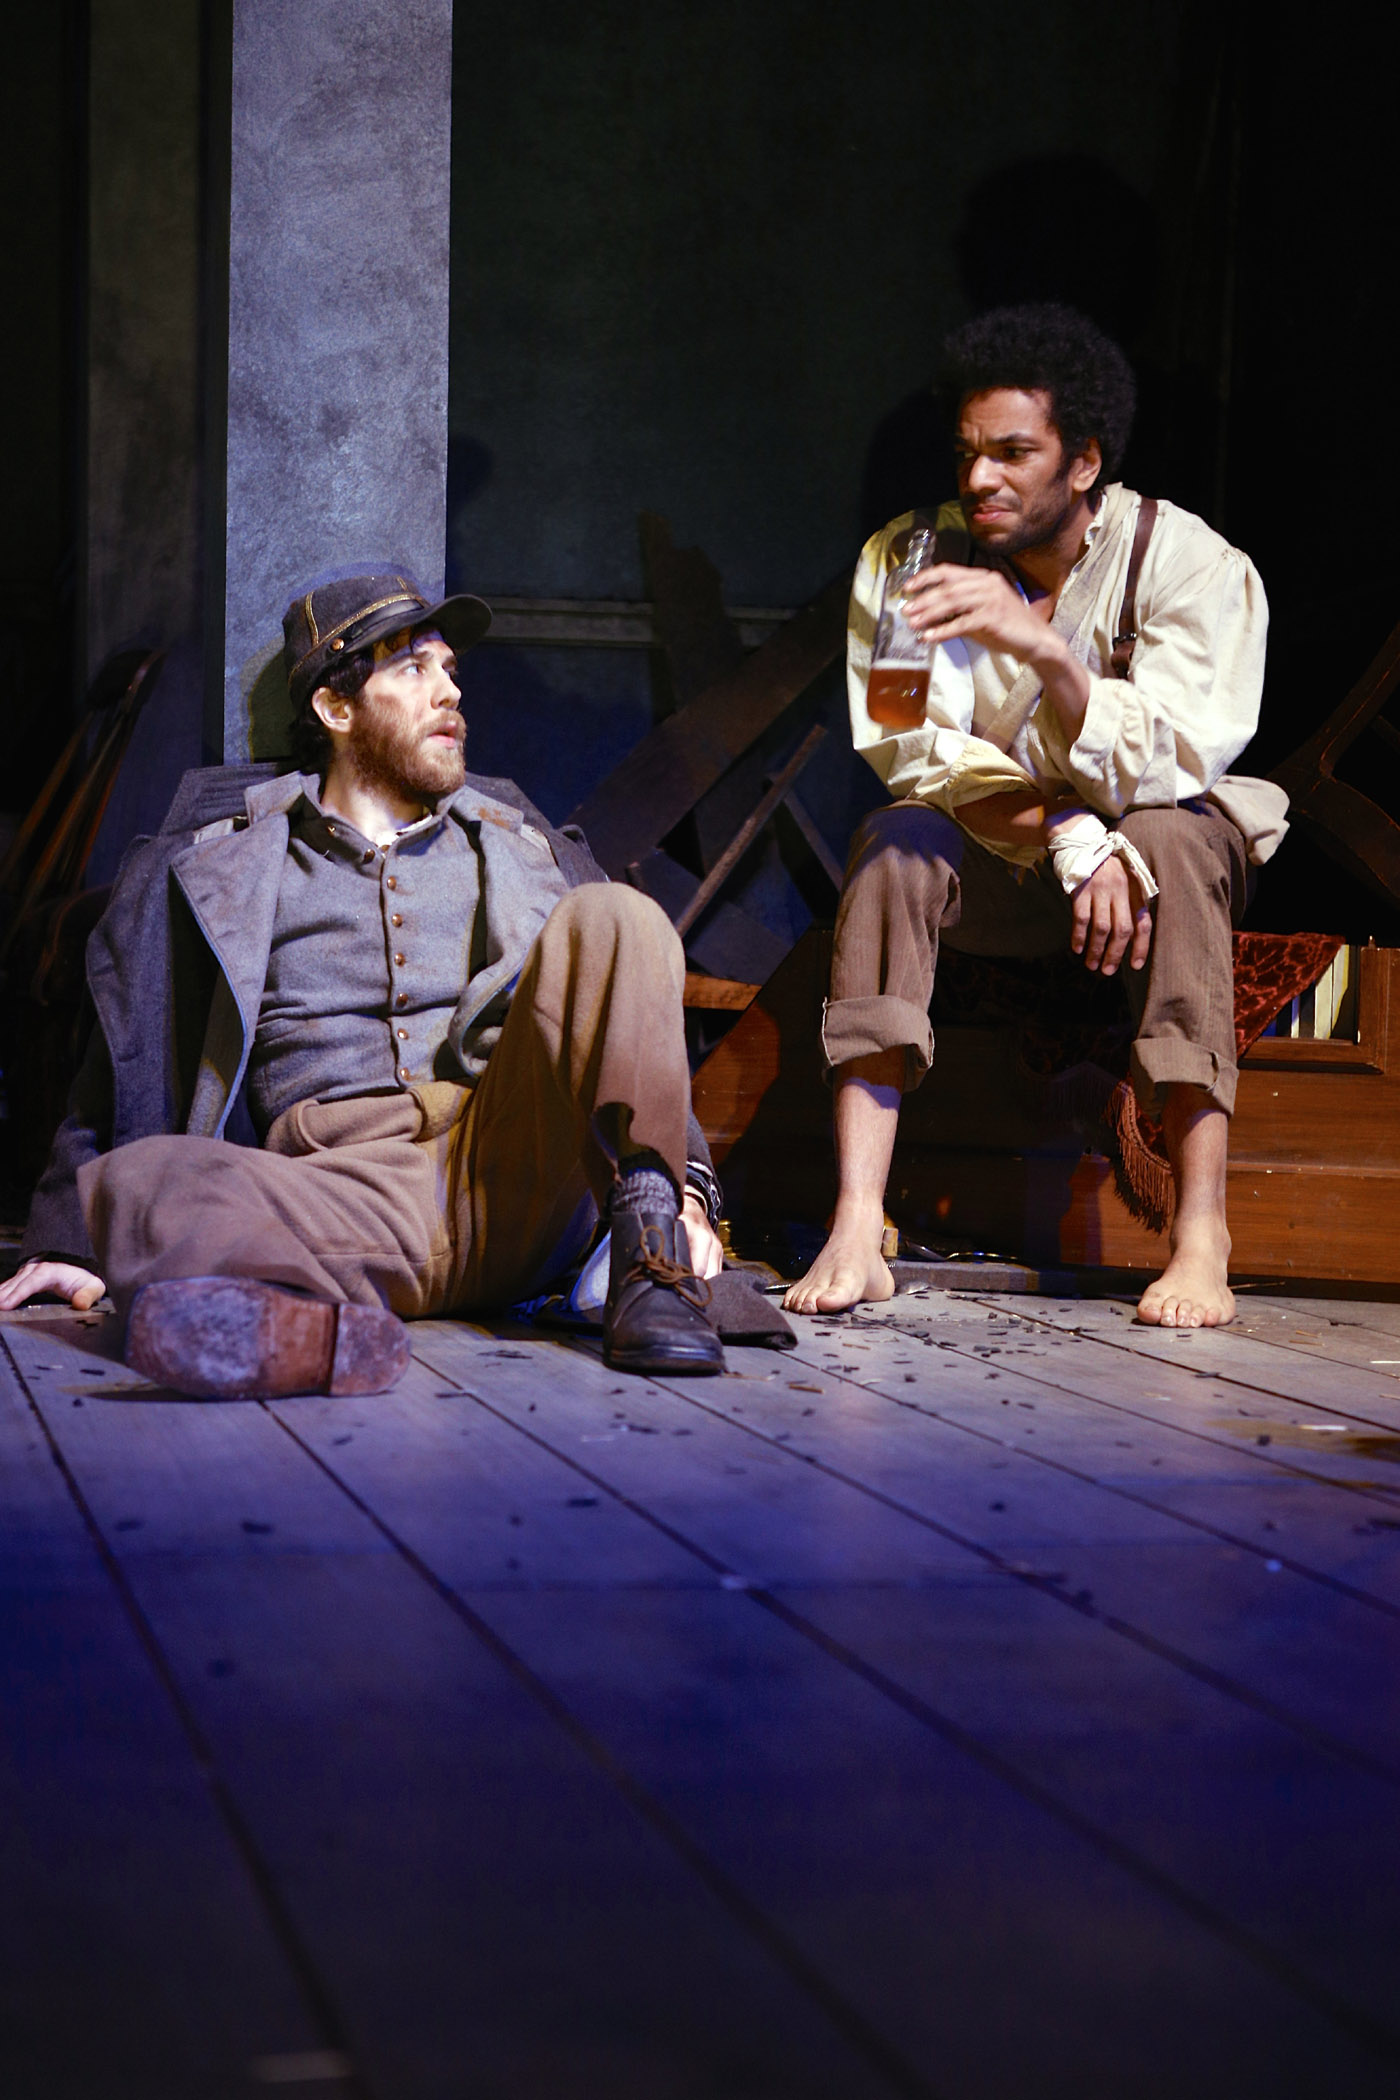 Gregory Perri (Caleb) and Biko Eisen-Martin (John) in the Syracuse Stage production of The Whipping Man. Photographer Michael Davis.